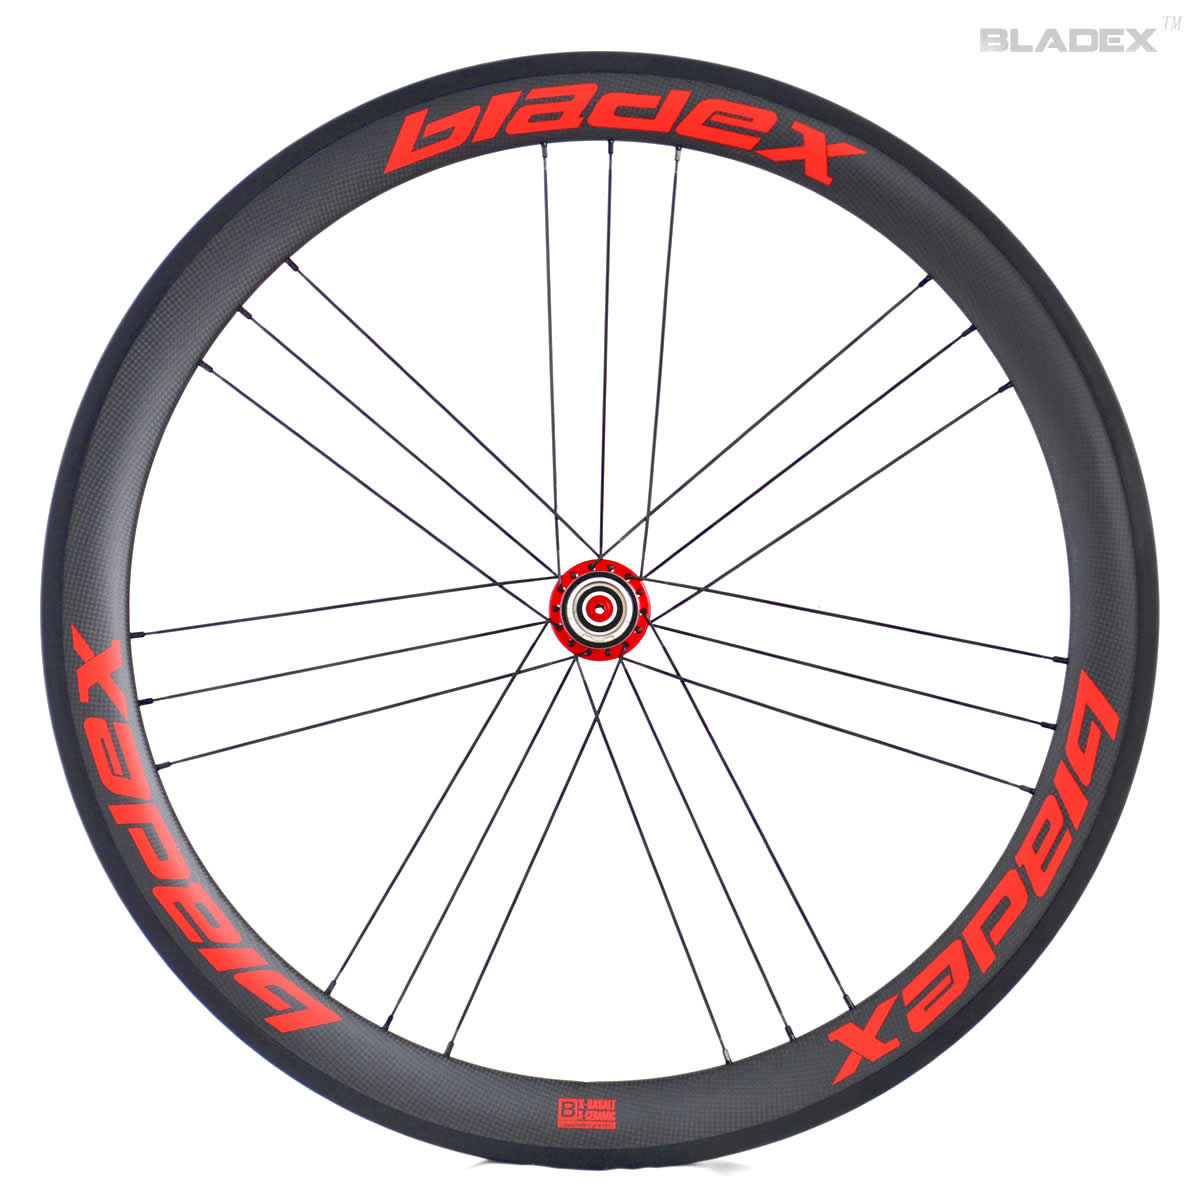 $200 OFF TODAY! Pro Road Bike 50mm G3 Carbon Wheelset ...